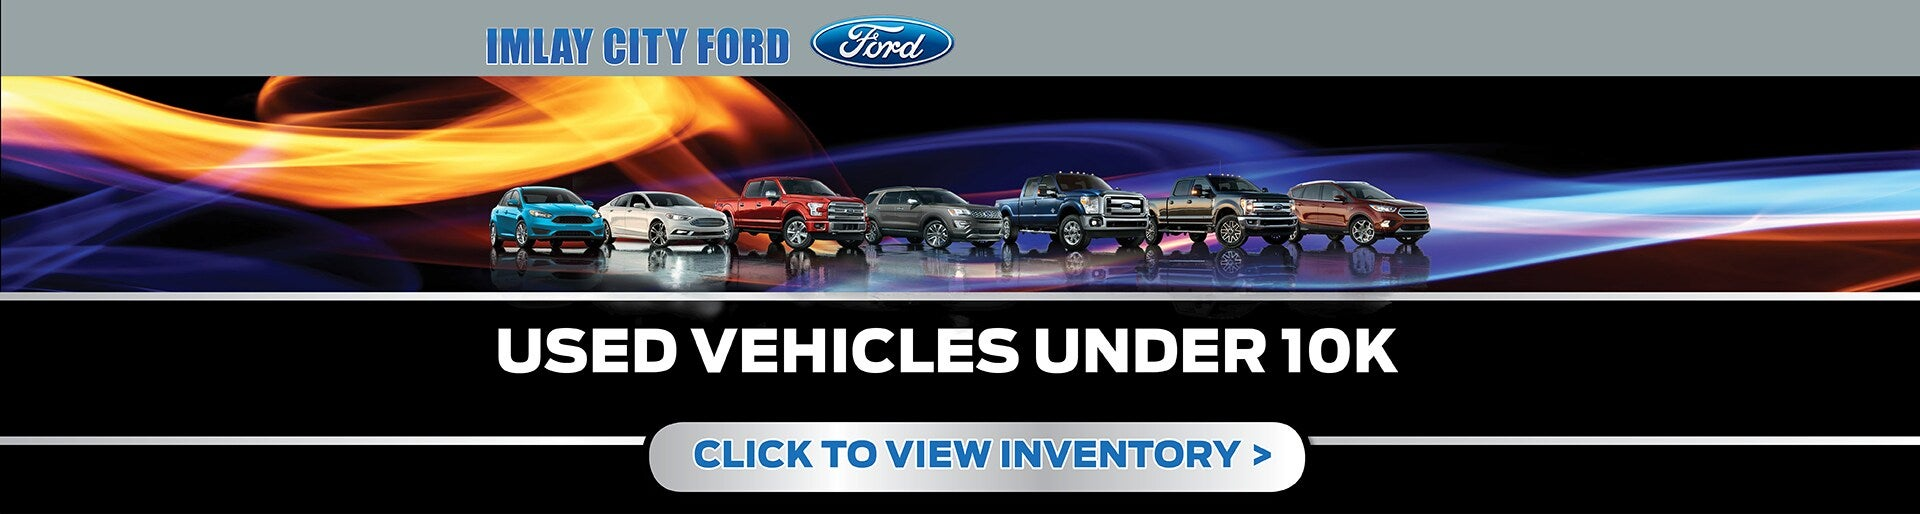 Used Cars For Sale Under 10 000 Imlay City Ford